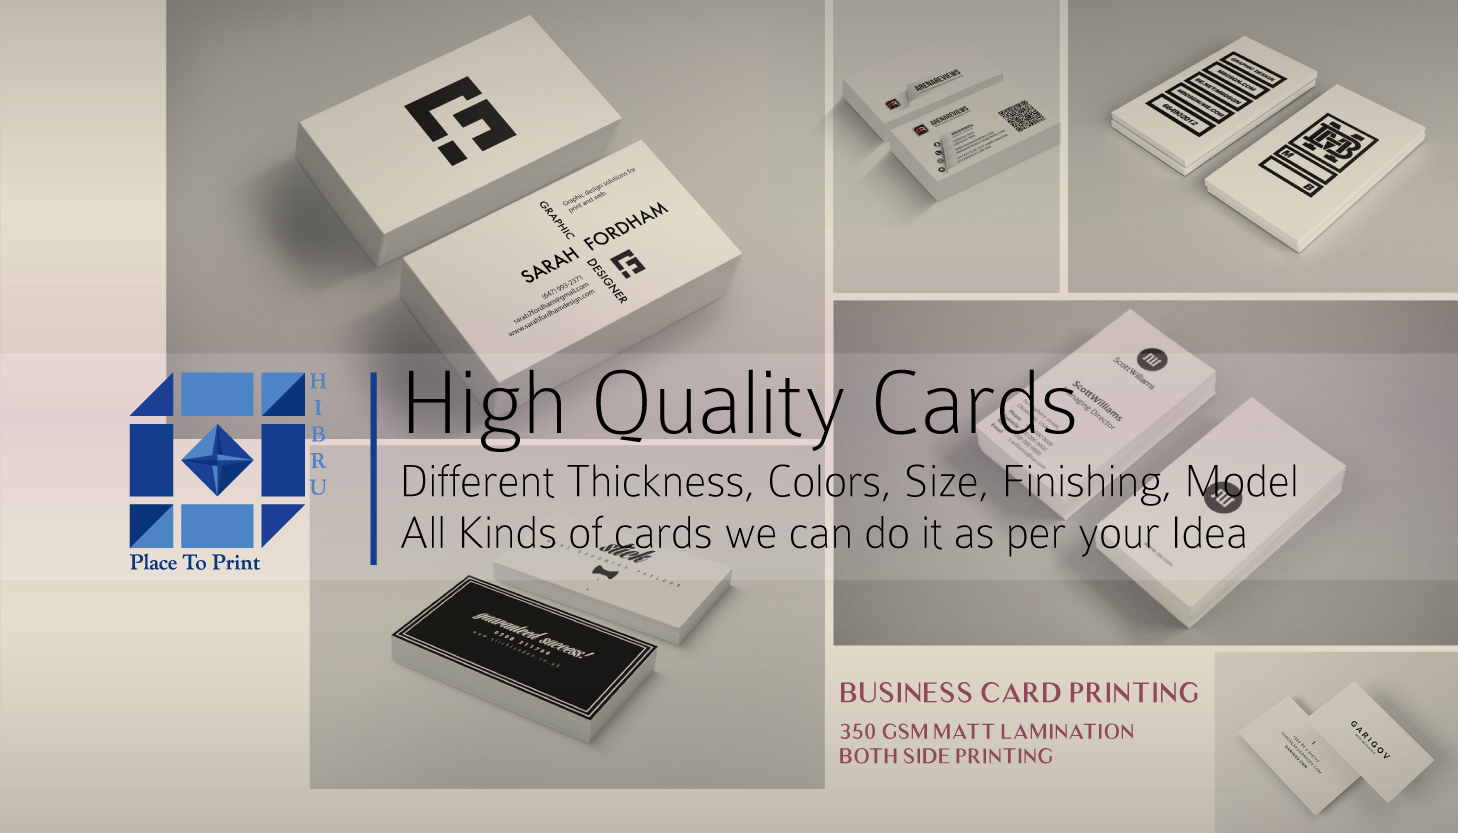 Business card printing best business cards business card template business card printing best business cards business card template business card printing cheap business cards visiting card reheart Gallery